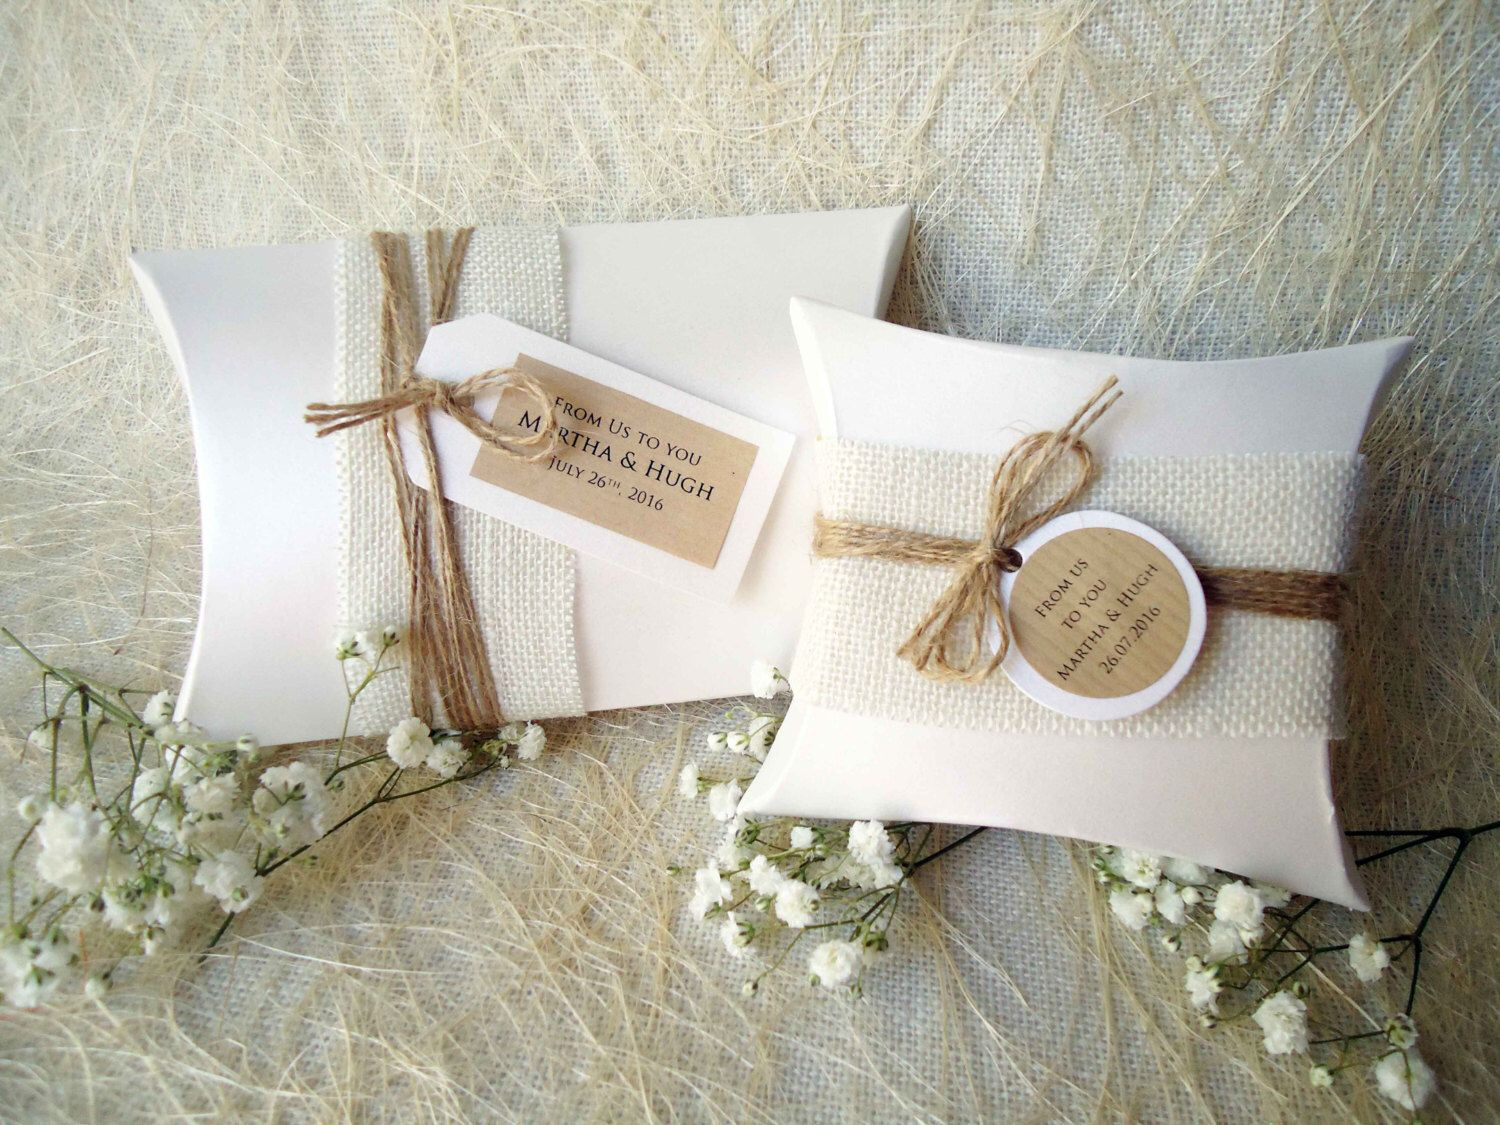 Wedding Favor Boxes Party Favor Boxes Pillow Boxes Burlap Box White ...